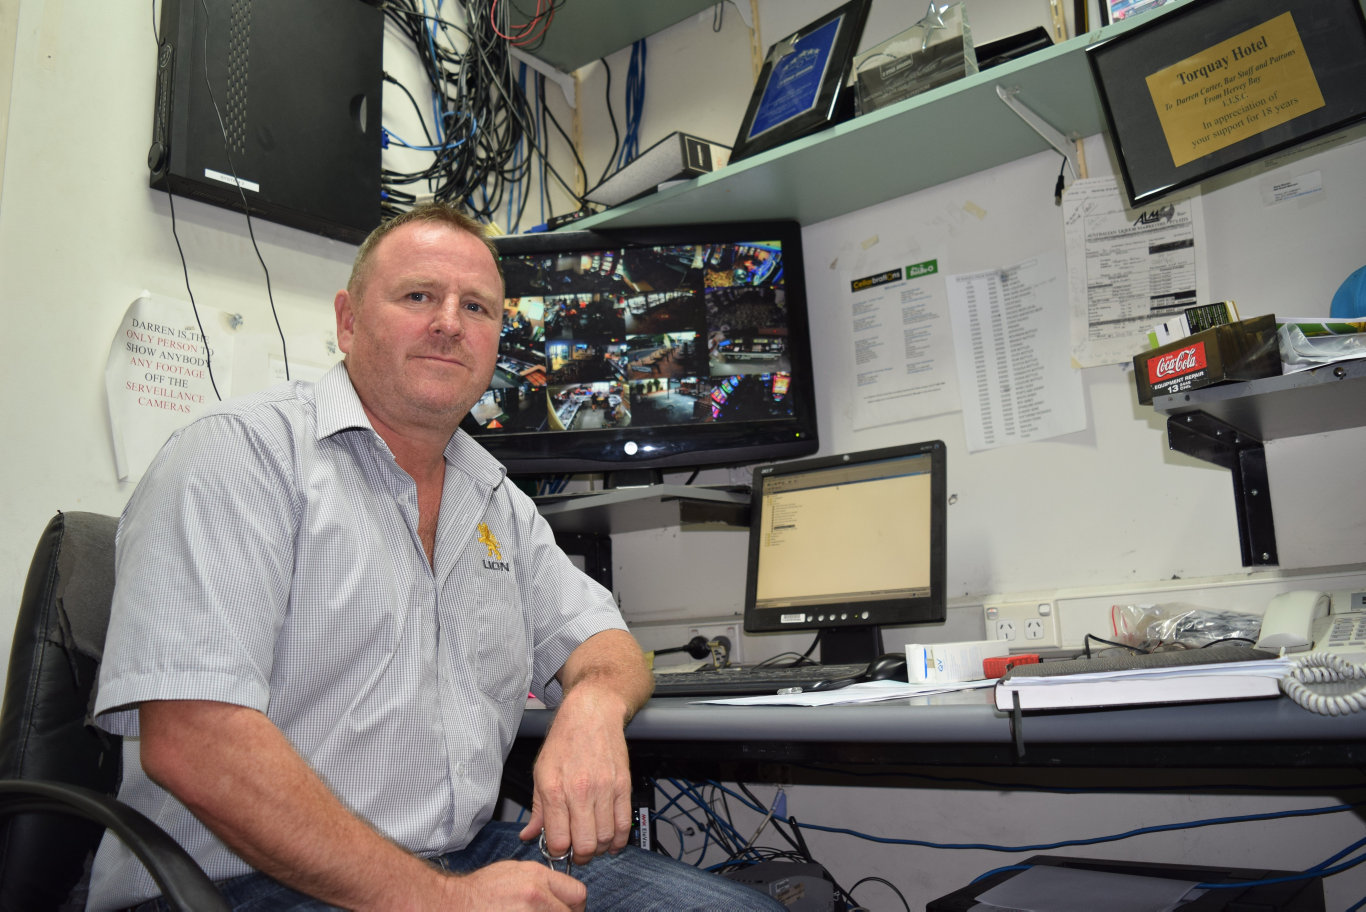 BEEFED UP SECURITY: Torquay Hotel owner Darren Carter has increased the number of security patrols after brazen thieves stole from his business about a week ago.